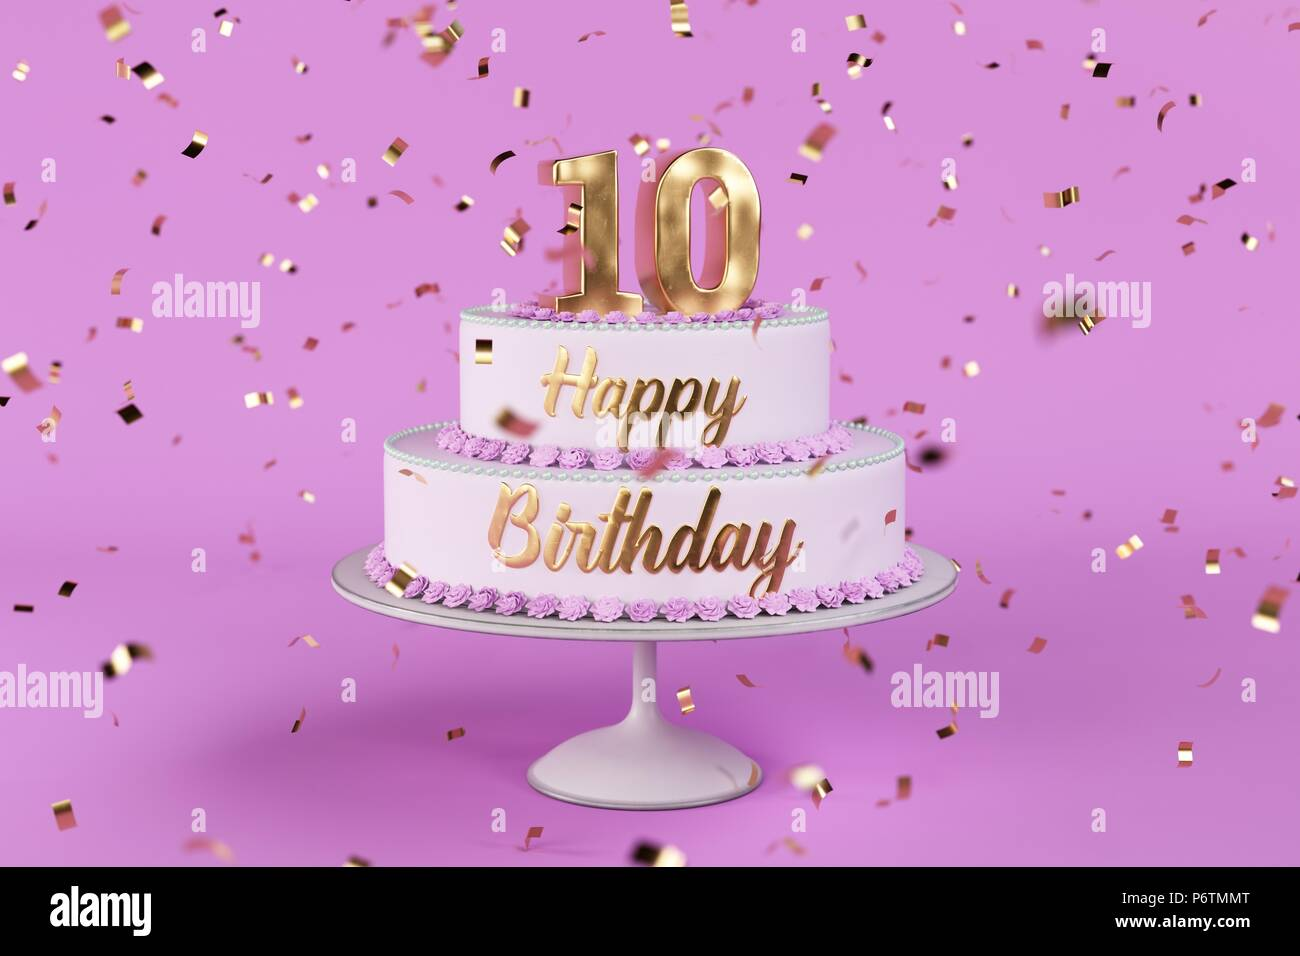 Superb Birthday Cake With Golden Letters And Numer 10 On Top Stock Photo Personalised Birthday Cards Epsylily Jamesorg